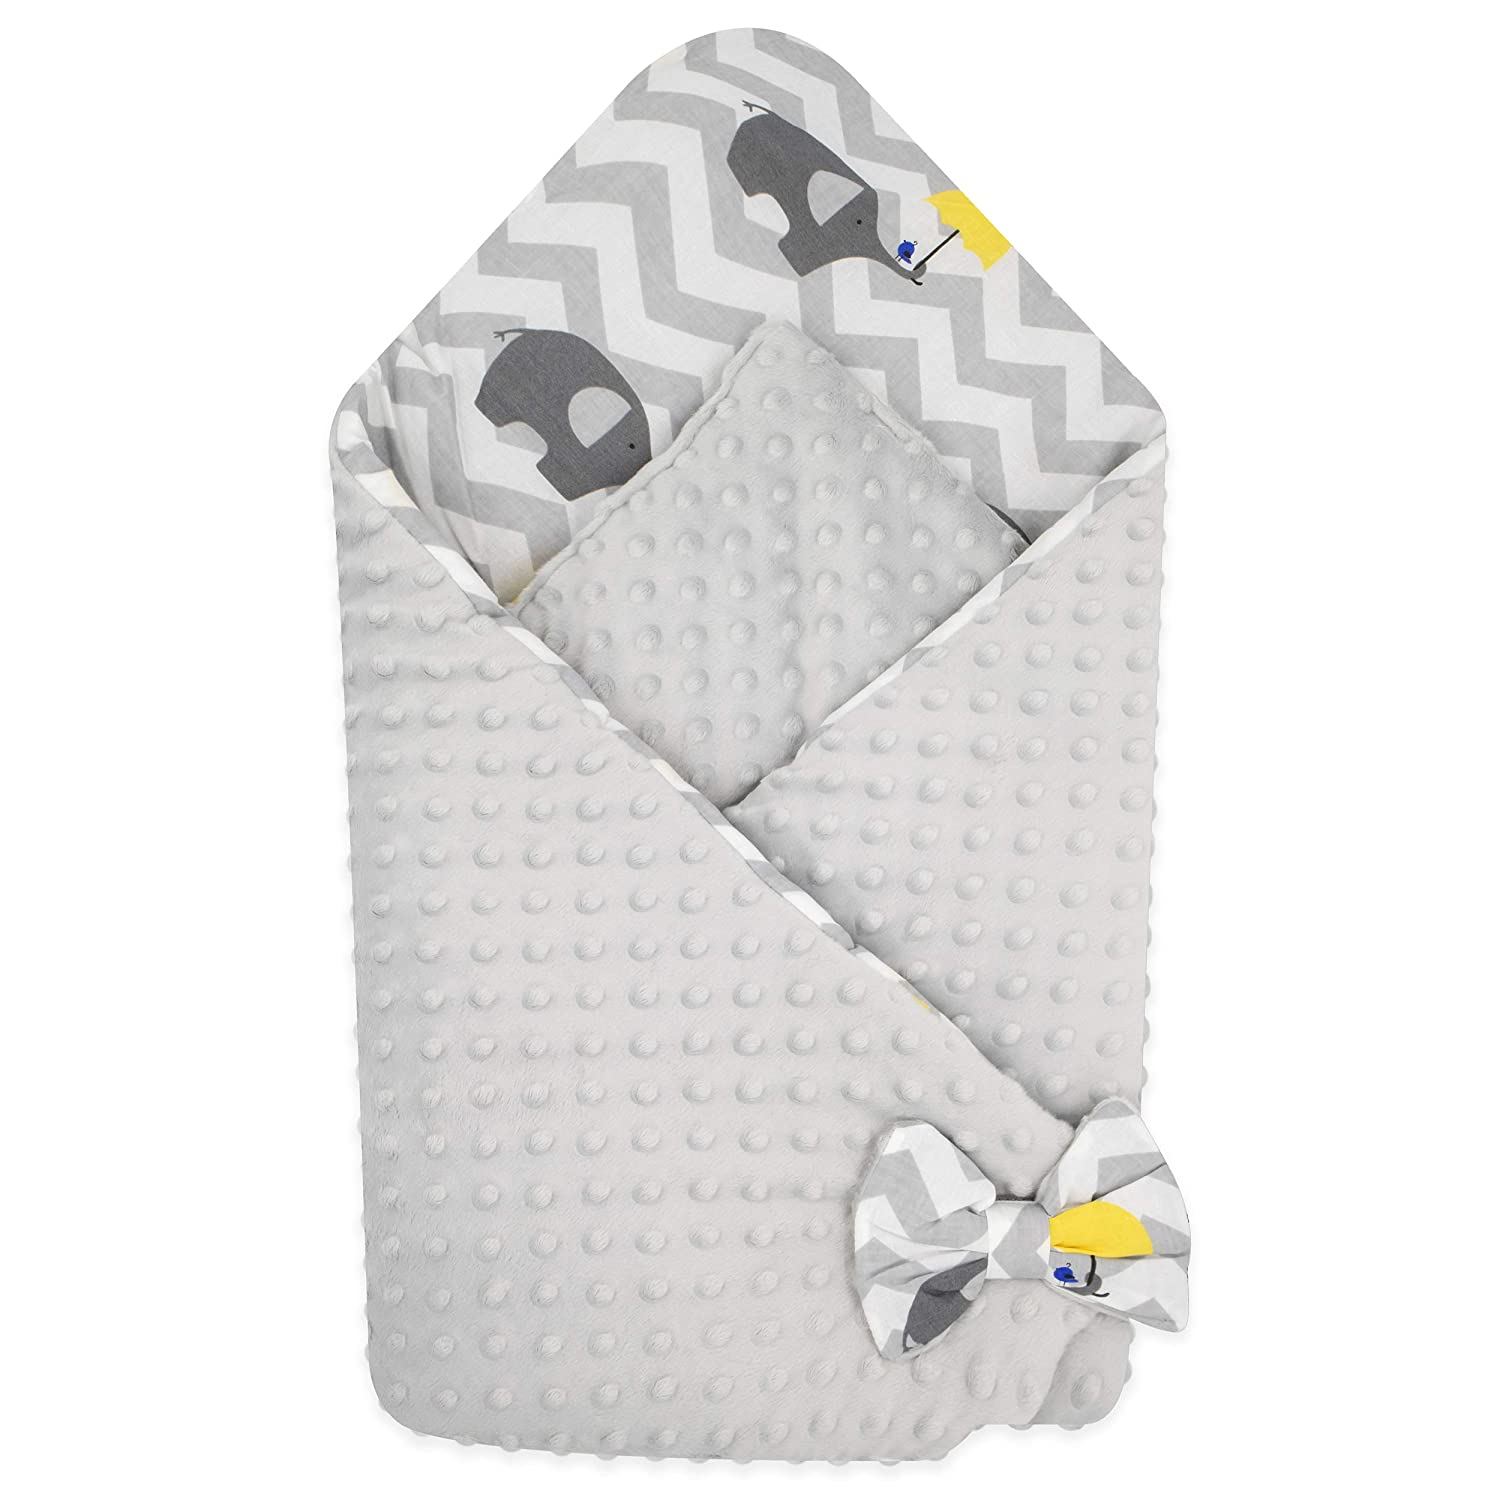 BlueberryShop Minky Fleece Baby Swaddle Wrap Car Seat Blanket Perfect as a Baby Shower Gift Grey 78 x 78 cm Two-sided Sleeping Bag for Newborns Intended for Kids Aged 0-3 Months